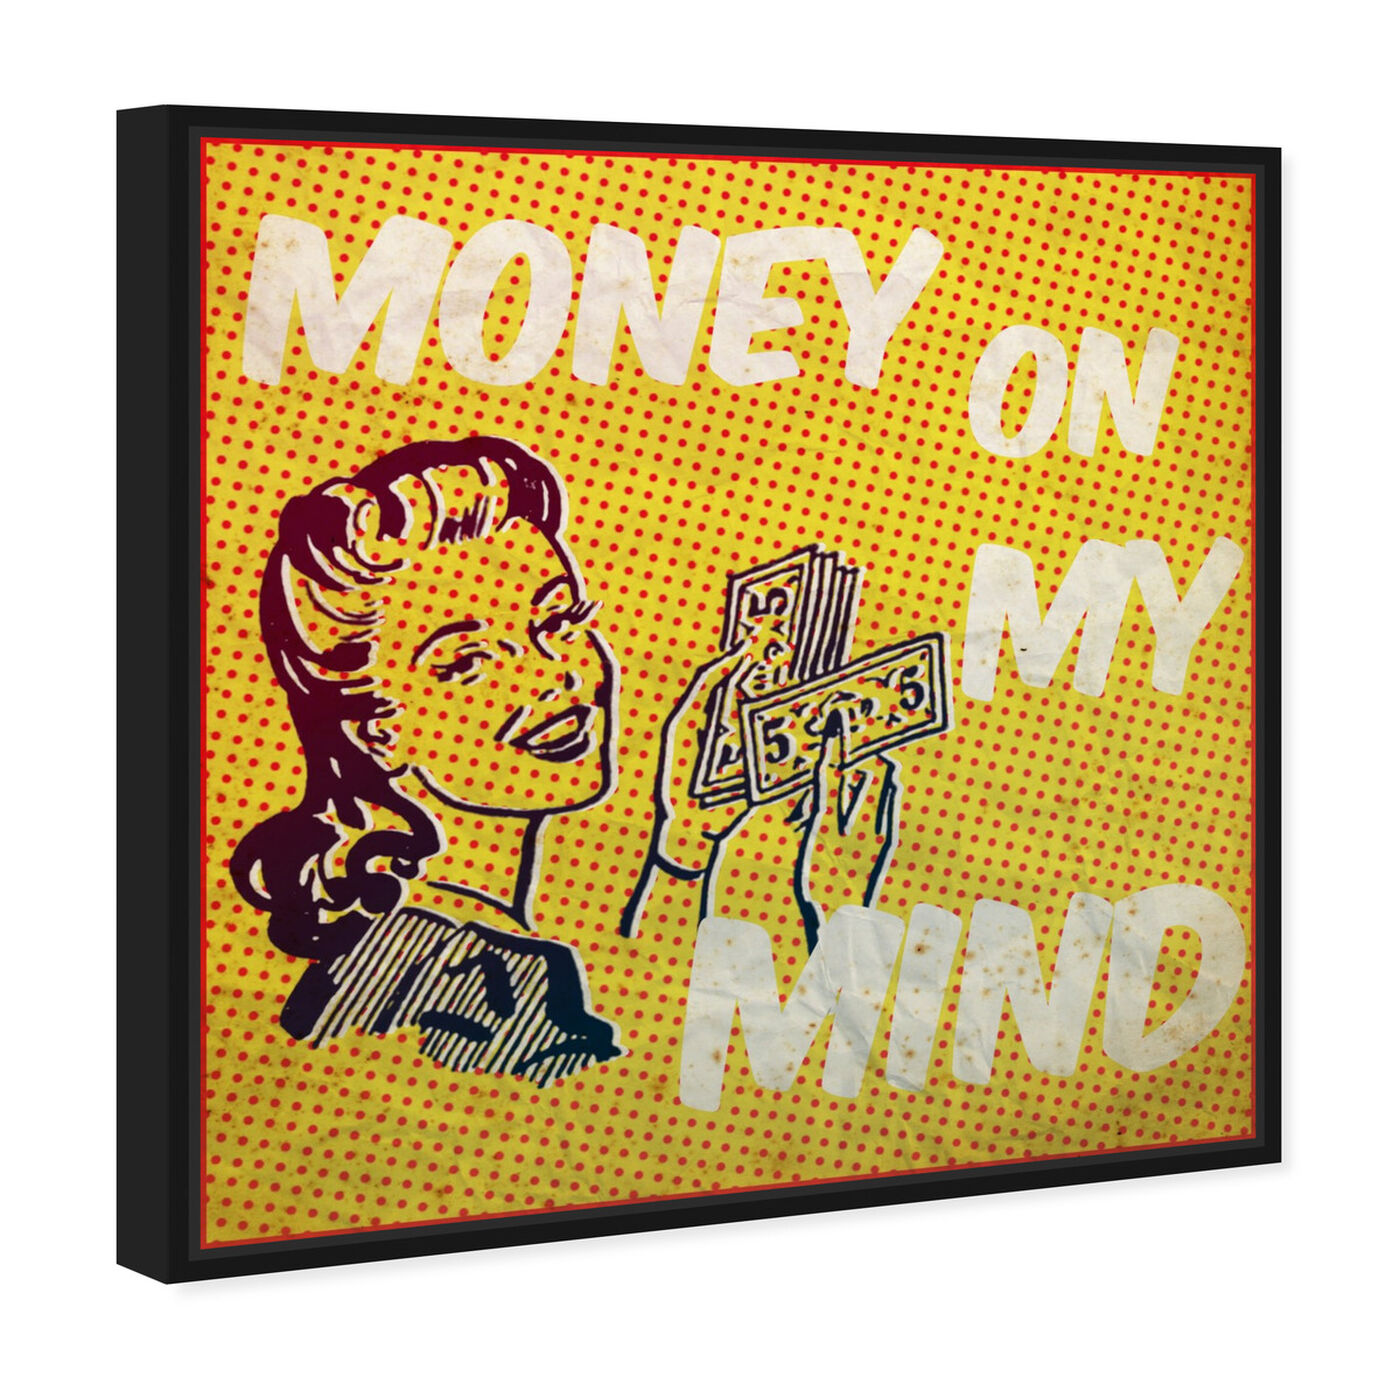 Angled view of Money on My Mind featuring advertising and comics art.